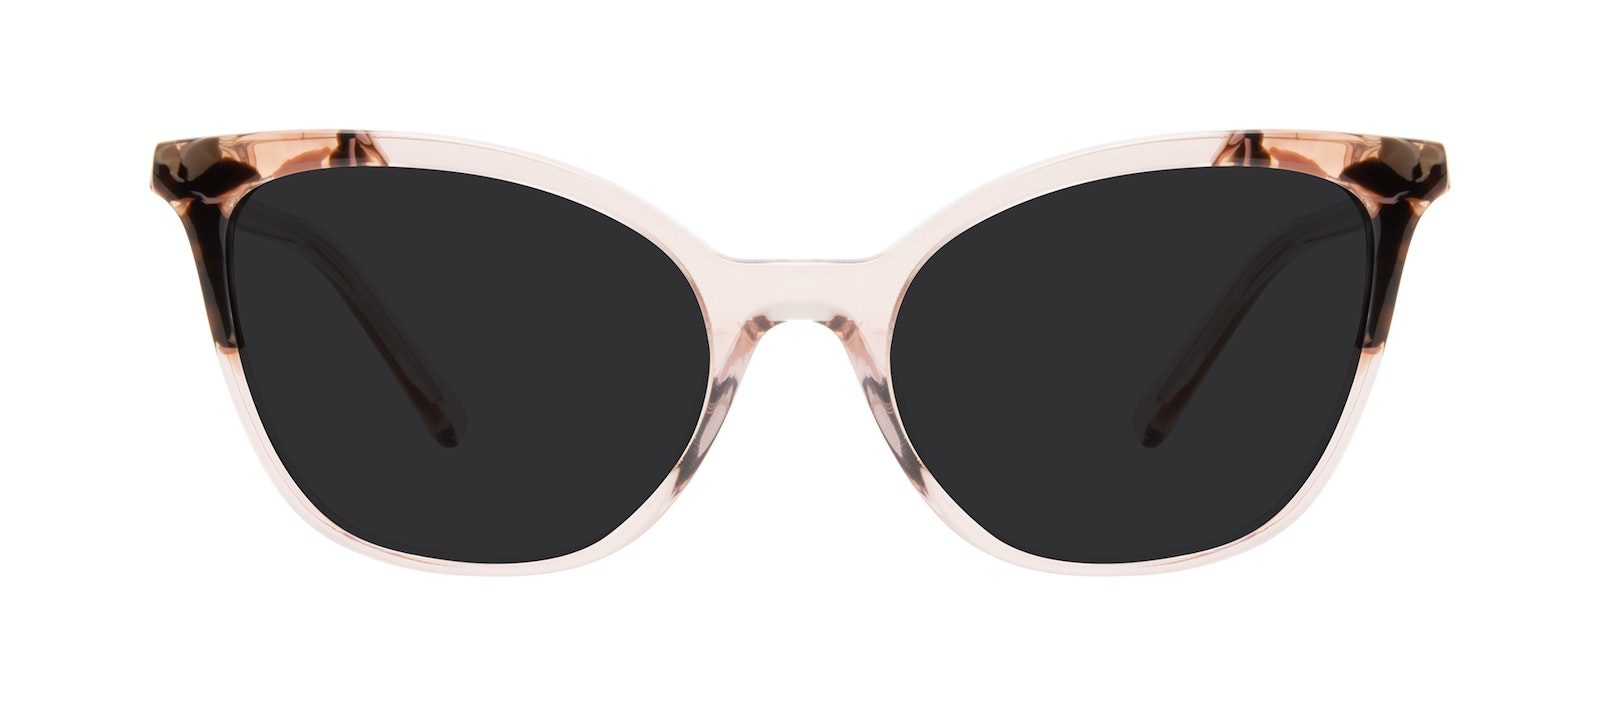 Affordable Fashion Glasses Cat Eye Sunglasses Women Tippi Pink Quartz Front